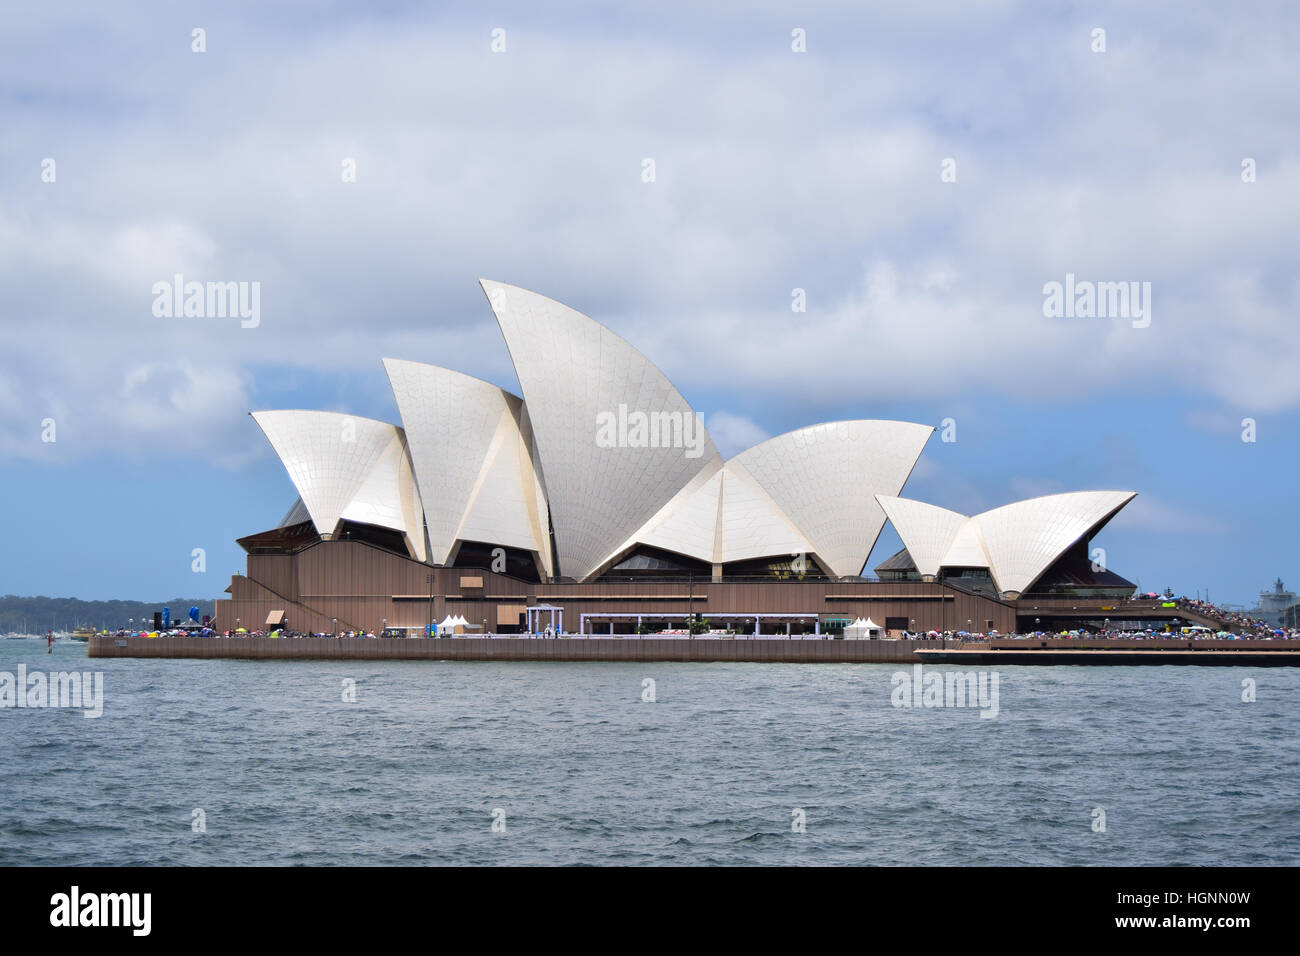 The Sydney Opera House SOH on Bennelong Point next to the Sydney Harbor Bridge and Harbor in Australia, New South Stock Photo